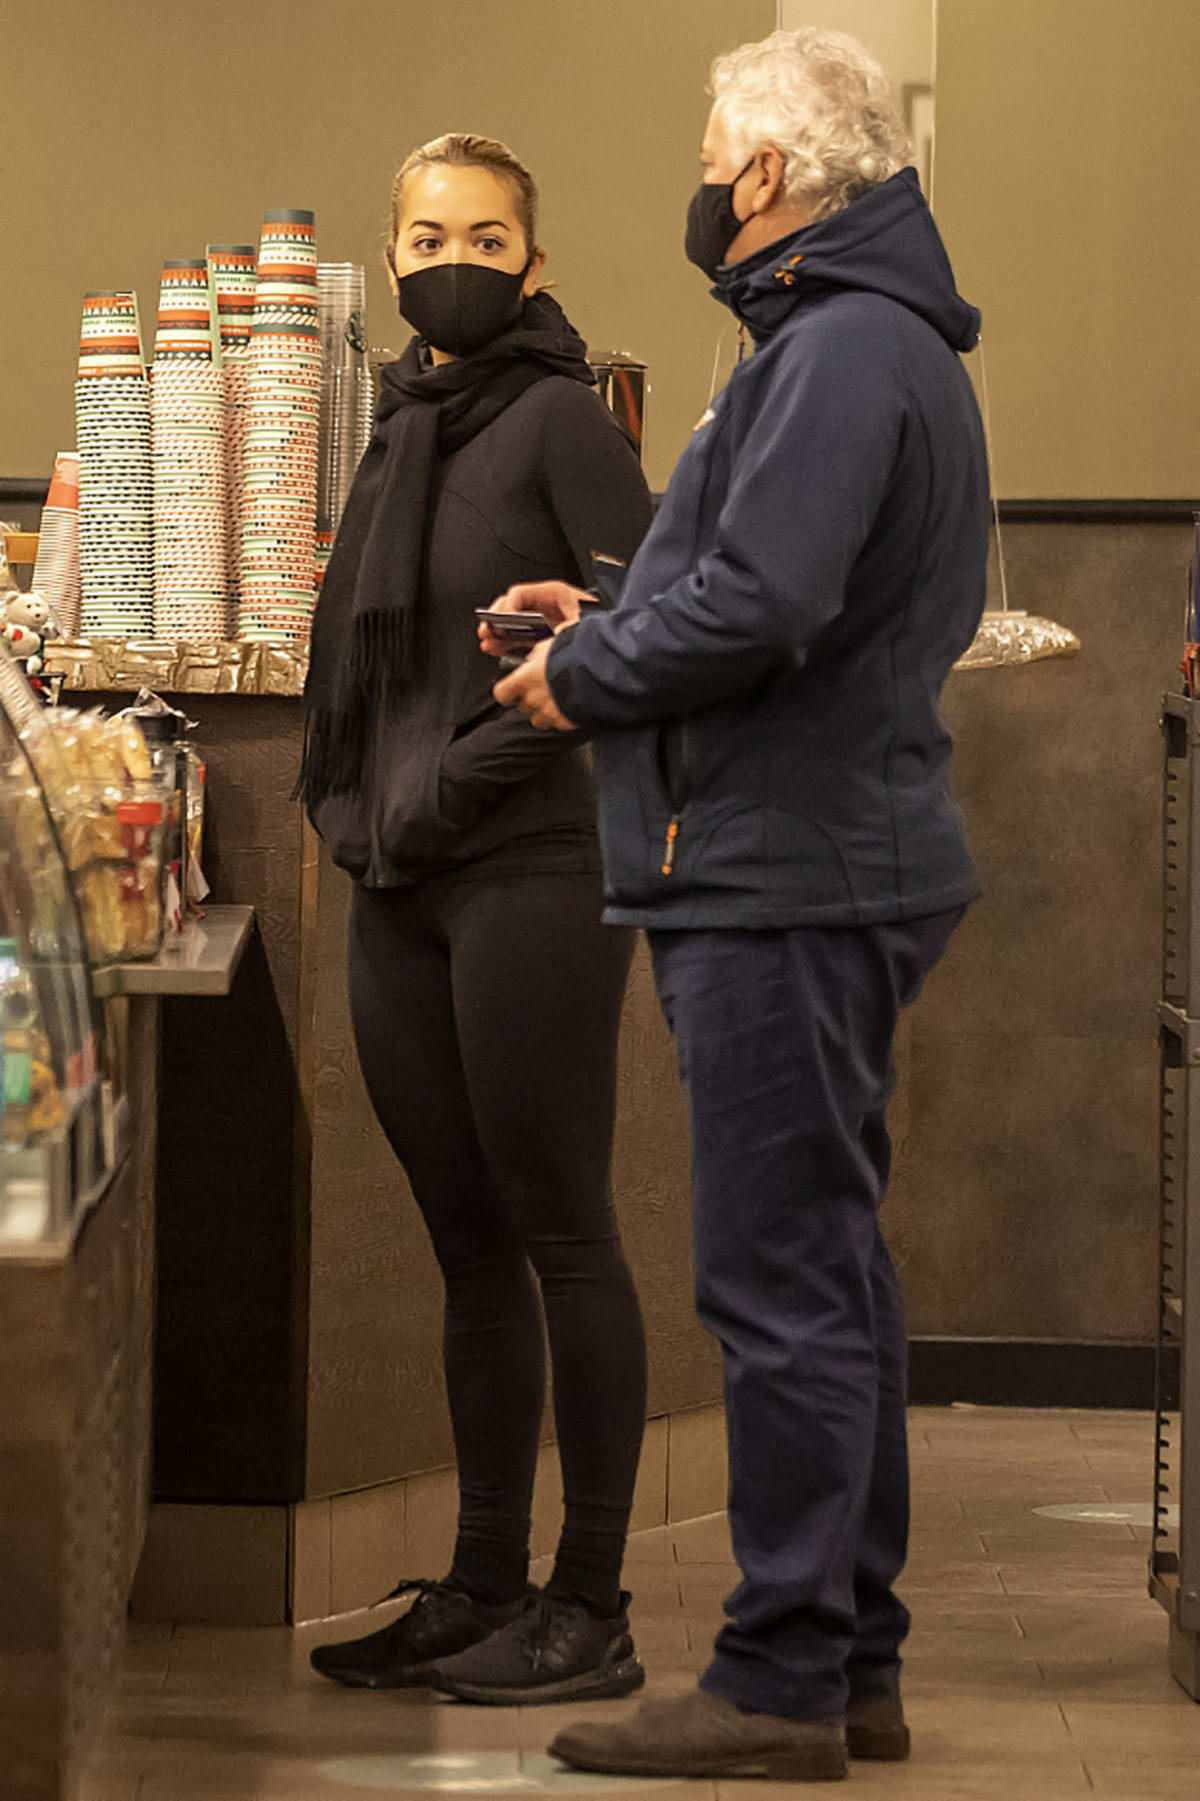 Rita Ora sports all-black activewear while out with her father for some coffee in Kensington, London, UK